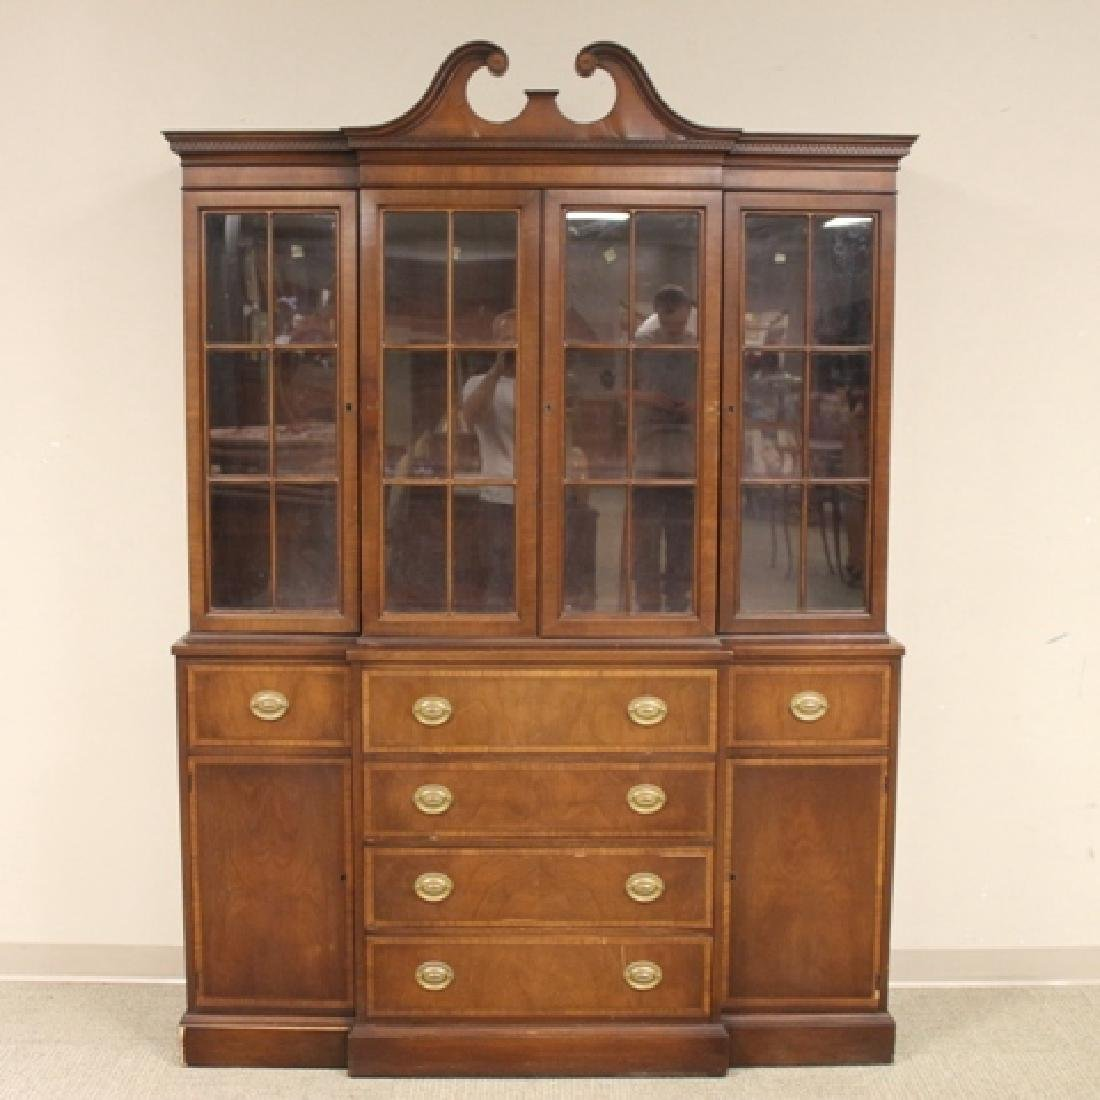 Mahogany Banded Johnson Furniture Co. Breakfront